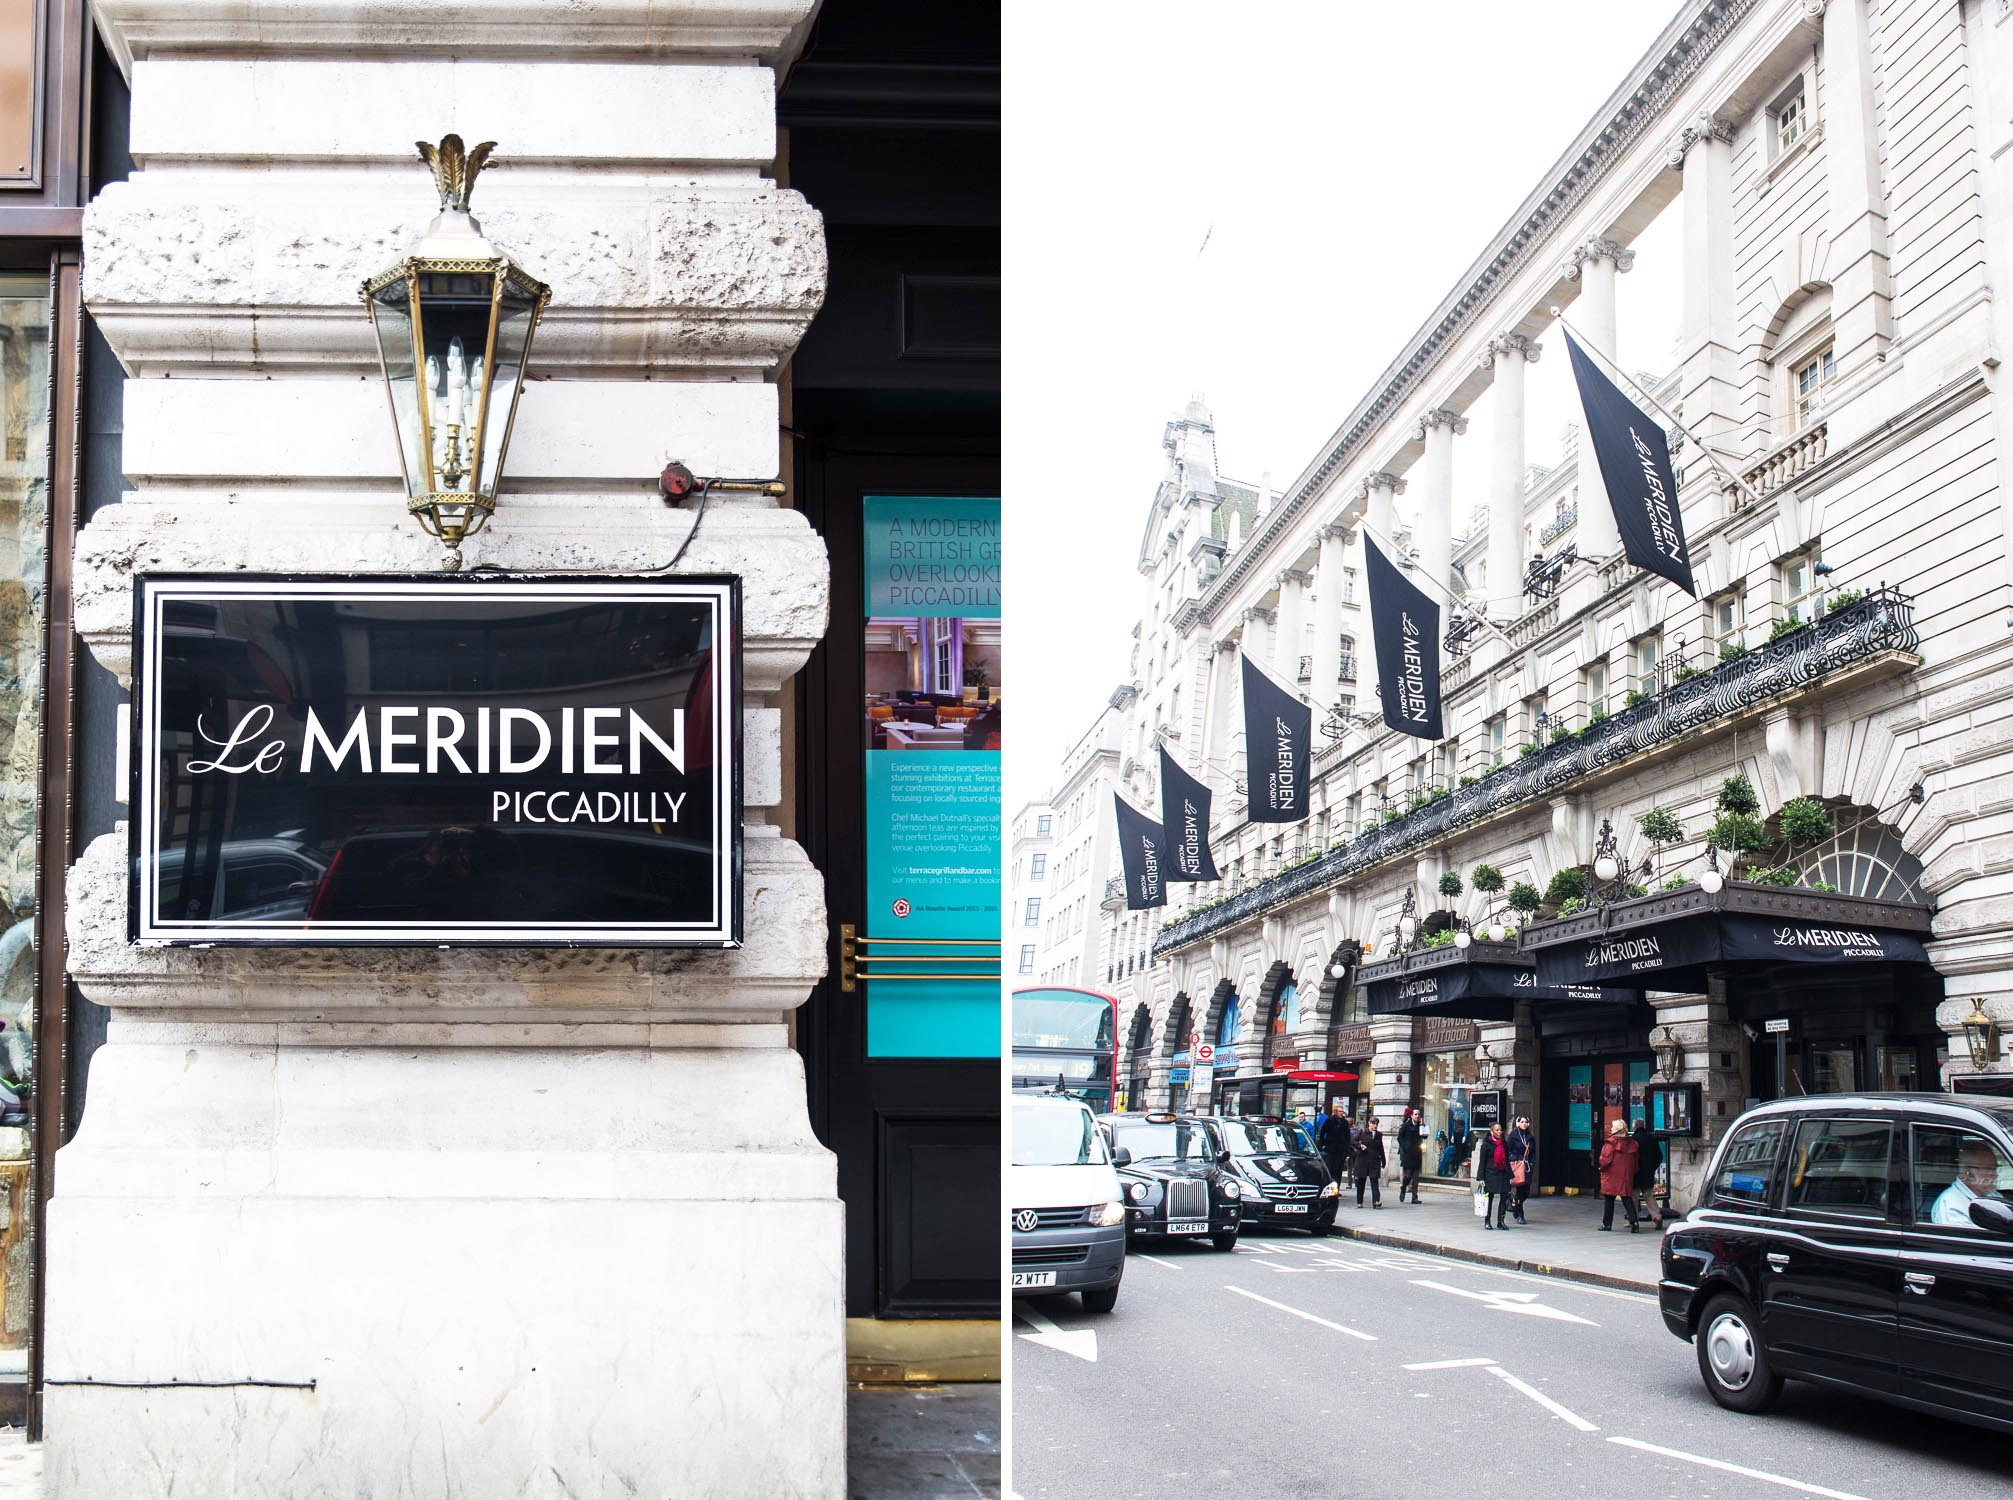 Le-Meridien-Piccadilly-4 copy